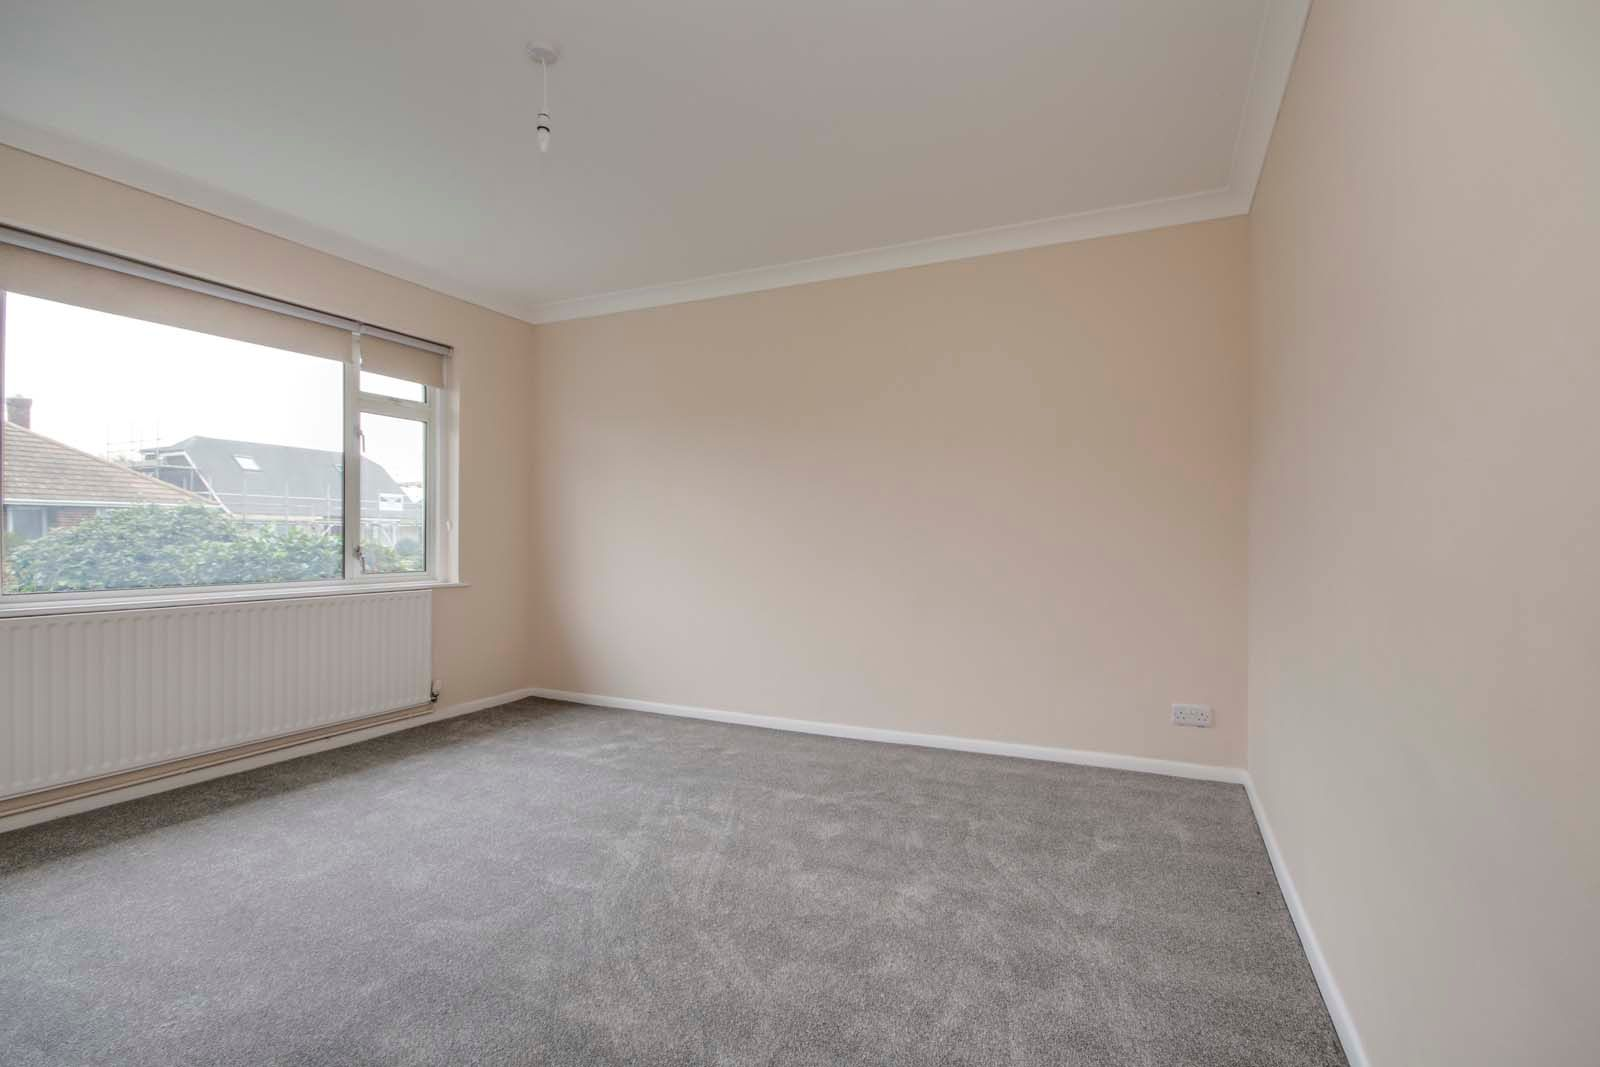 3 bed bungalow for sale in Hillview Crescent COMP MAY 2019 7